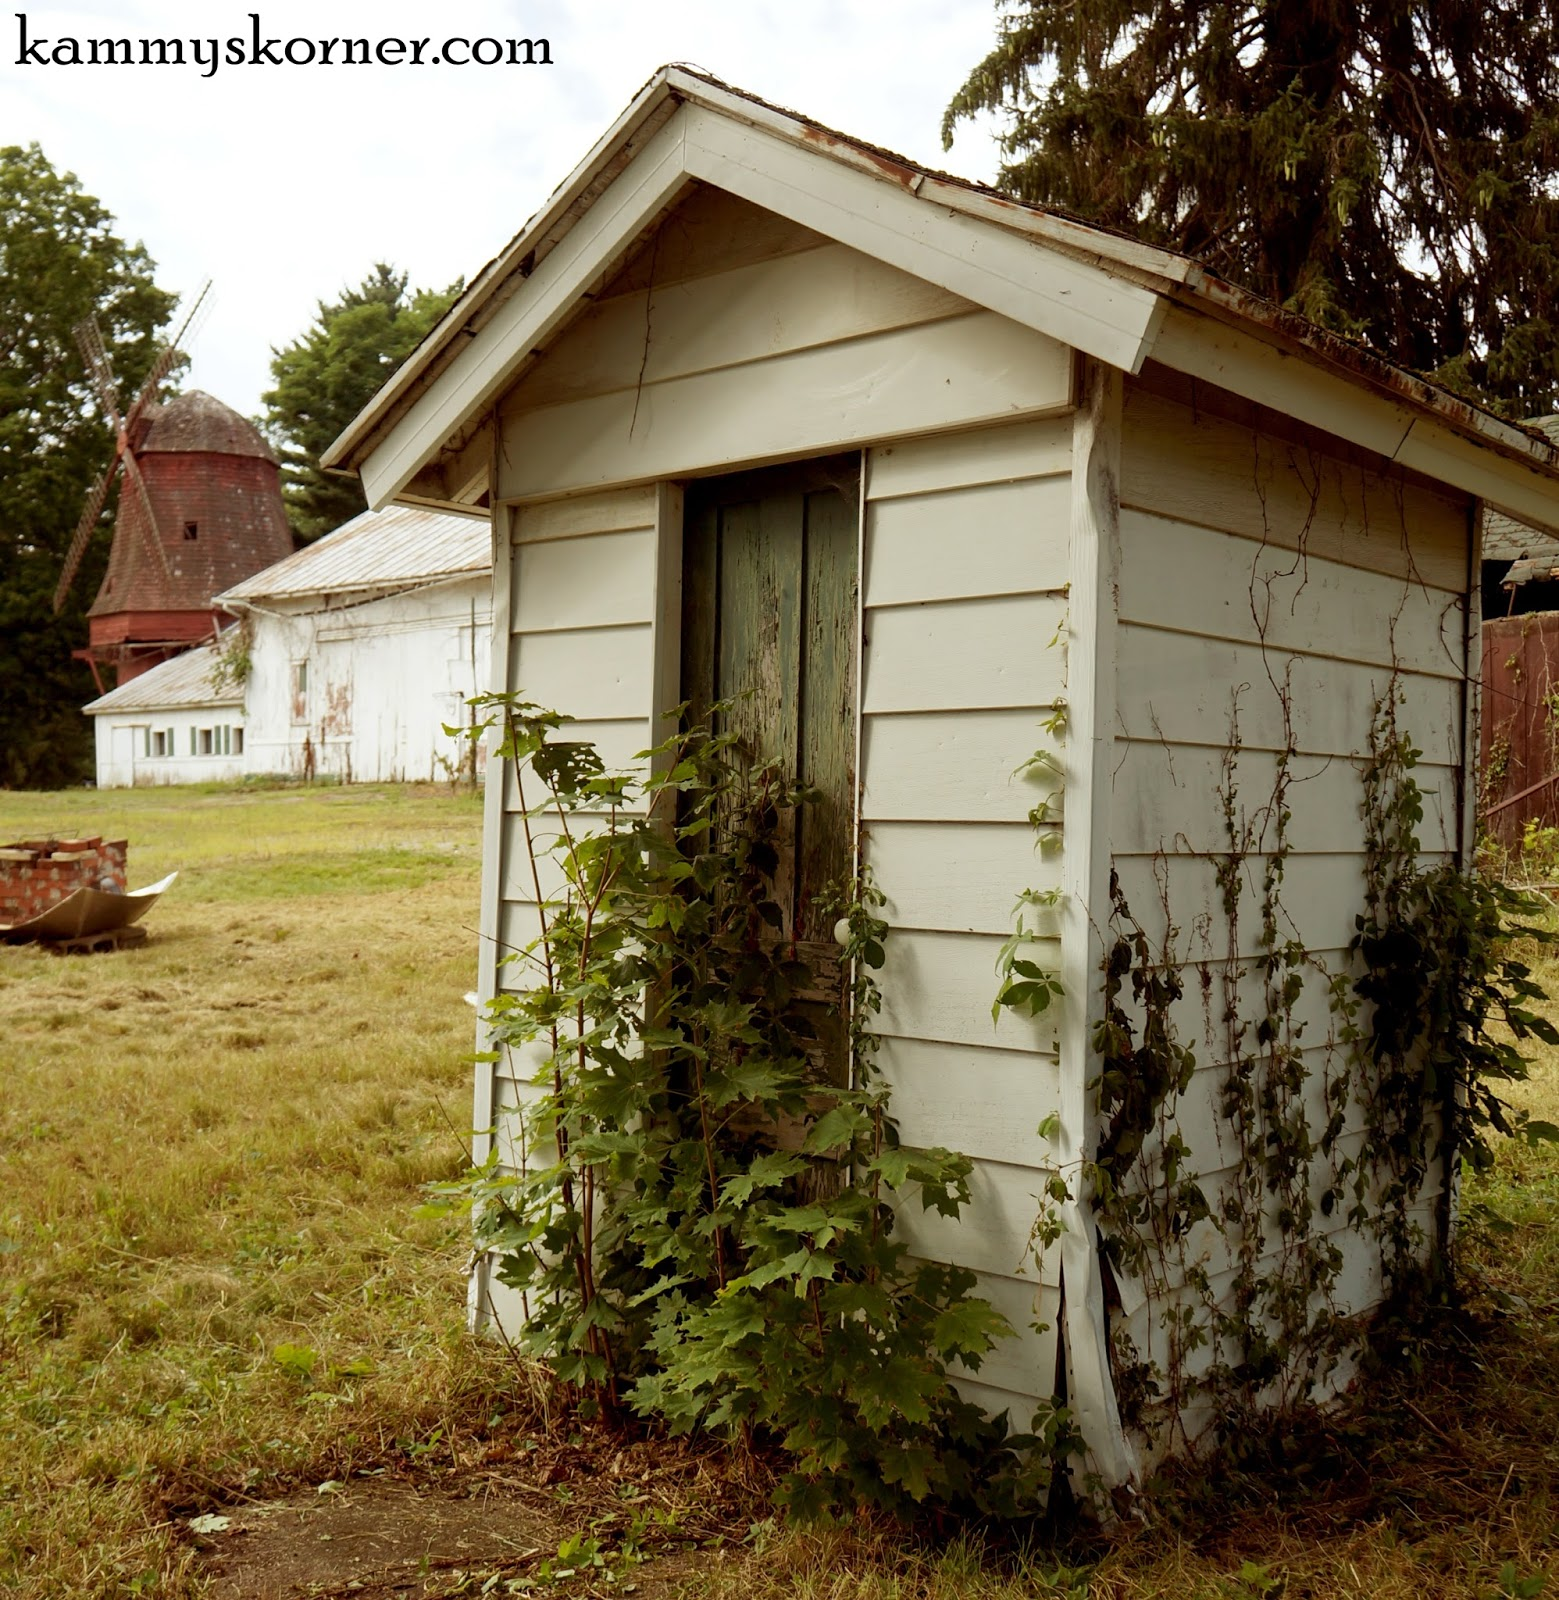 Kammy's Korner: We kicked in the outhouse door... on outhouse foam, outhouse signs, outhouse fabric, outhouse silhouette, outhouse prints, outhouse ornaments, outhouse stamps, outhouse decorations, outhouse kits, outhouse posters, outhouse theme decor,